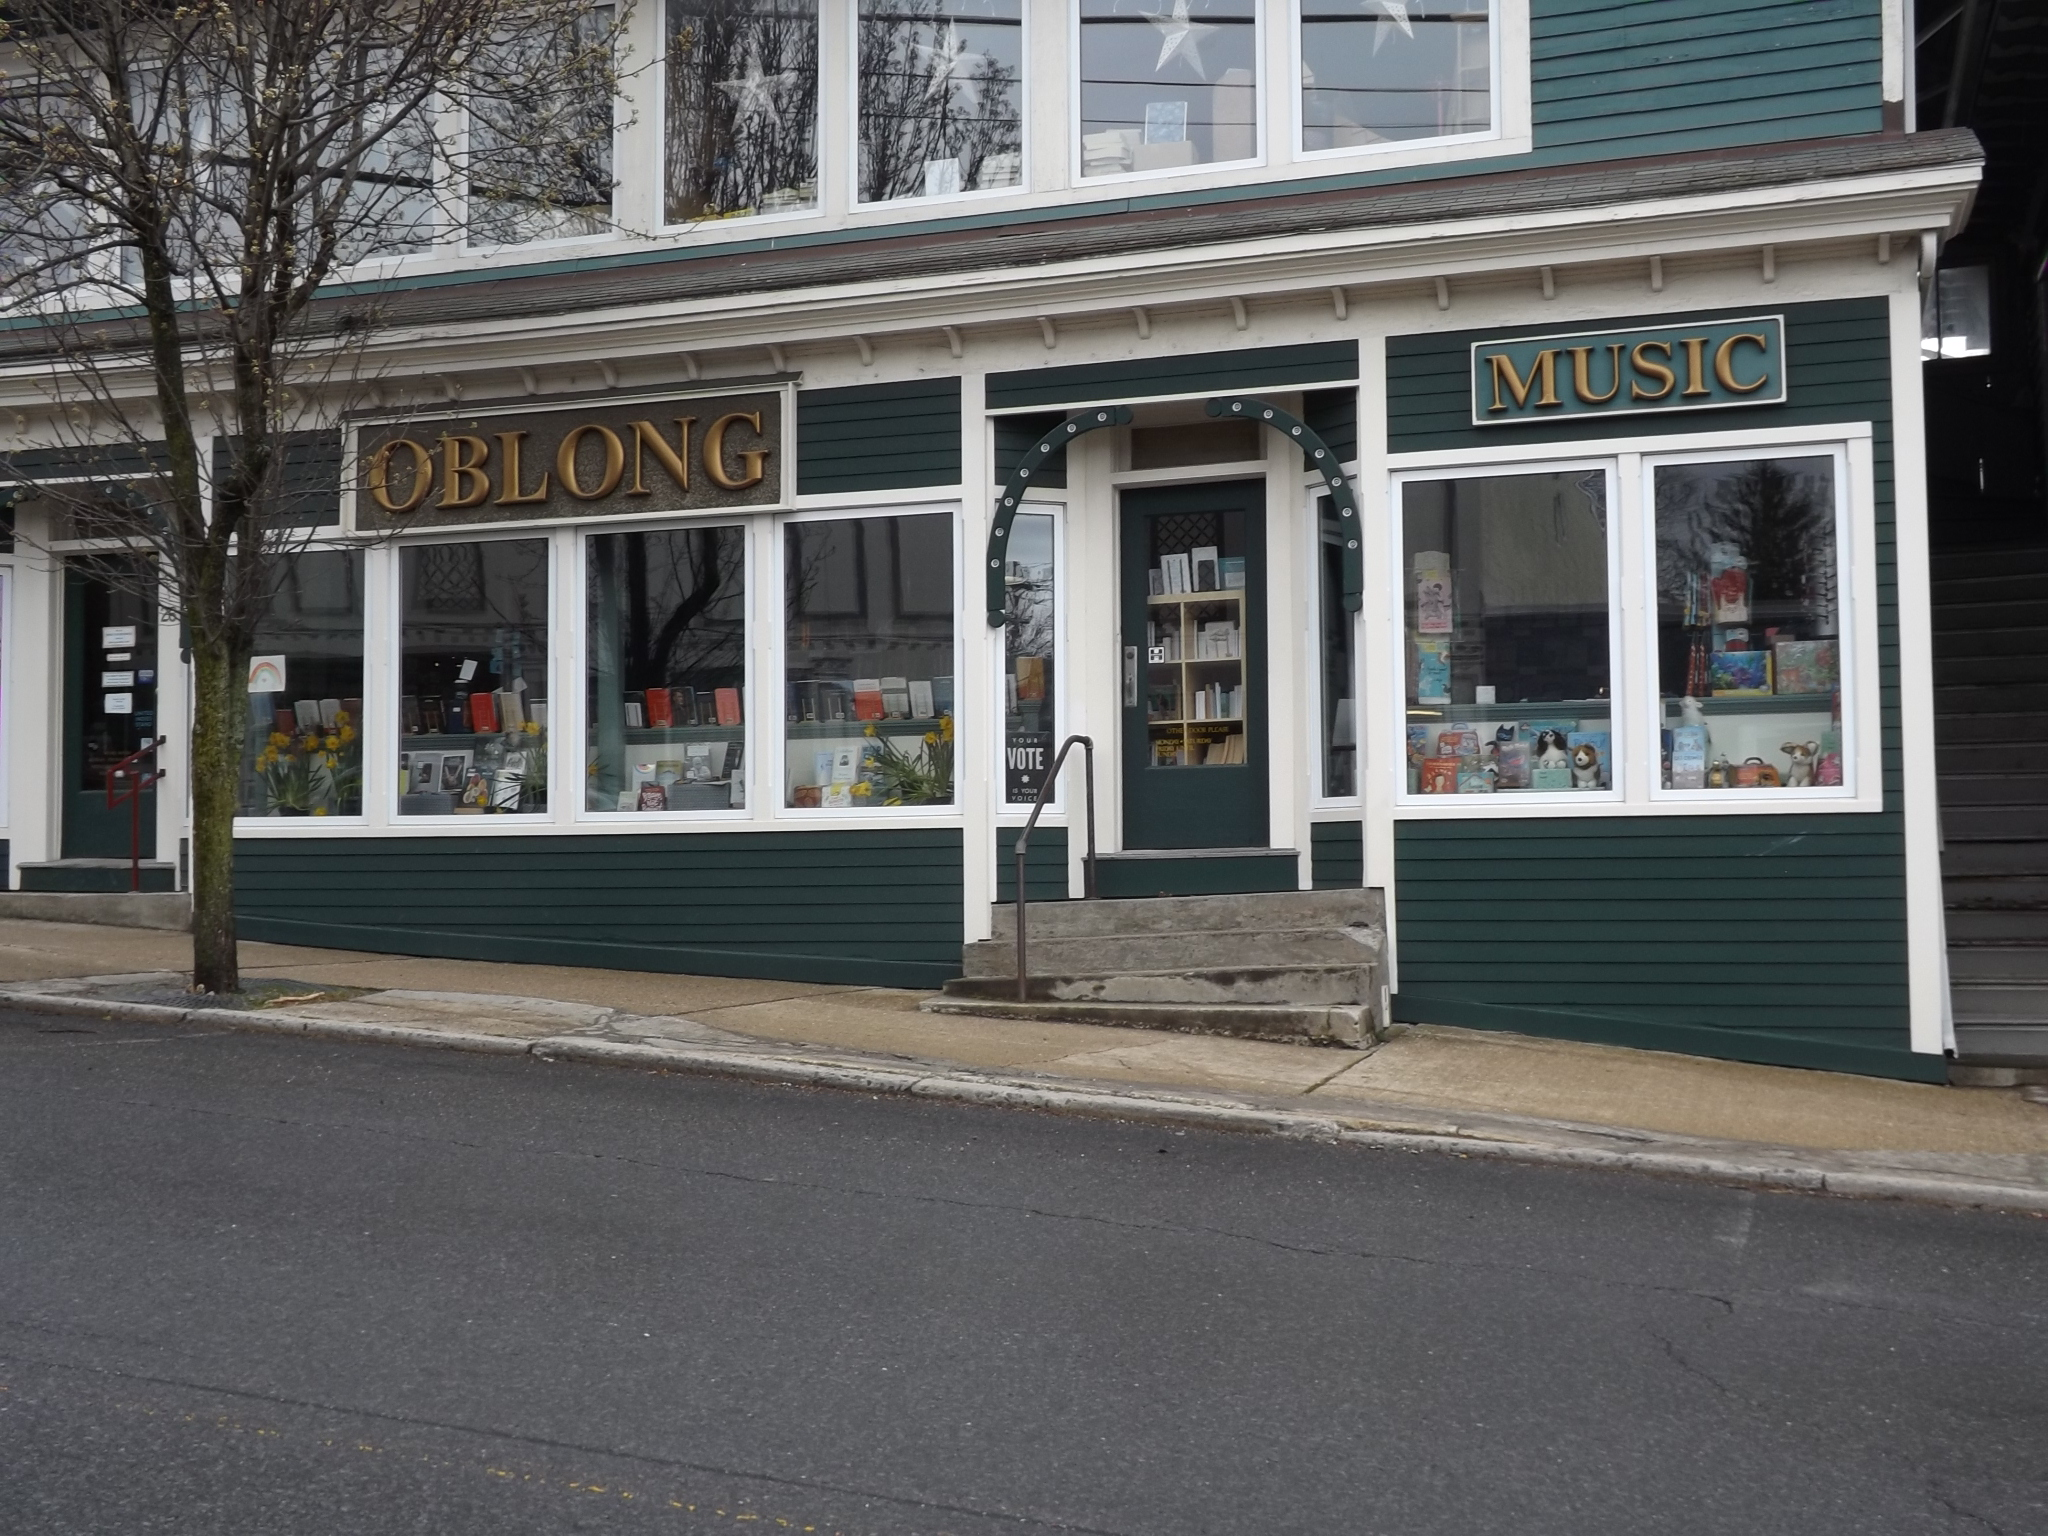 <strong>Located at 26 Main St. in Millerton, Oblong Books &amp; Music's entry is welcoming and has become an iconic destination over the past decades. <em>Photo by Kaitlin Lyle</em></strong>